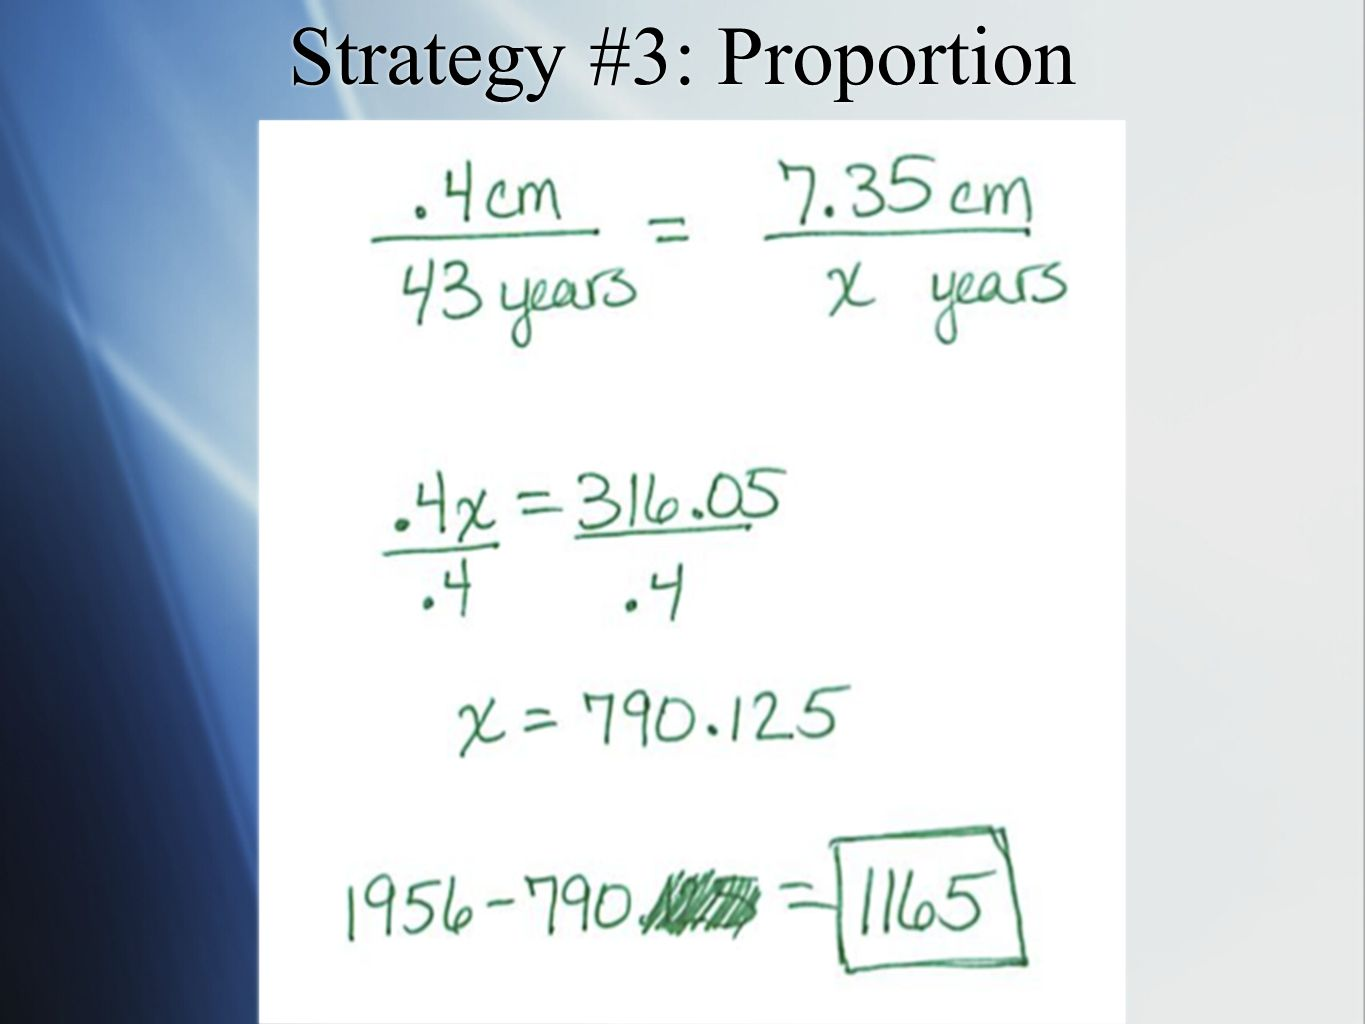 Strategy #3: Proportion